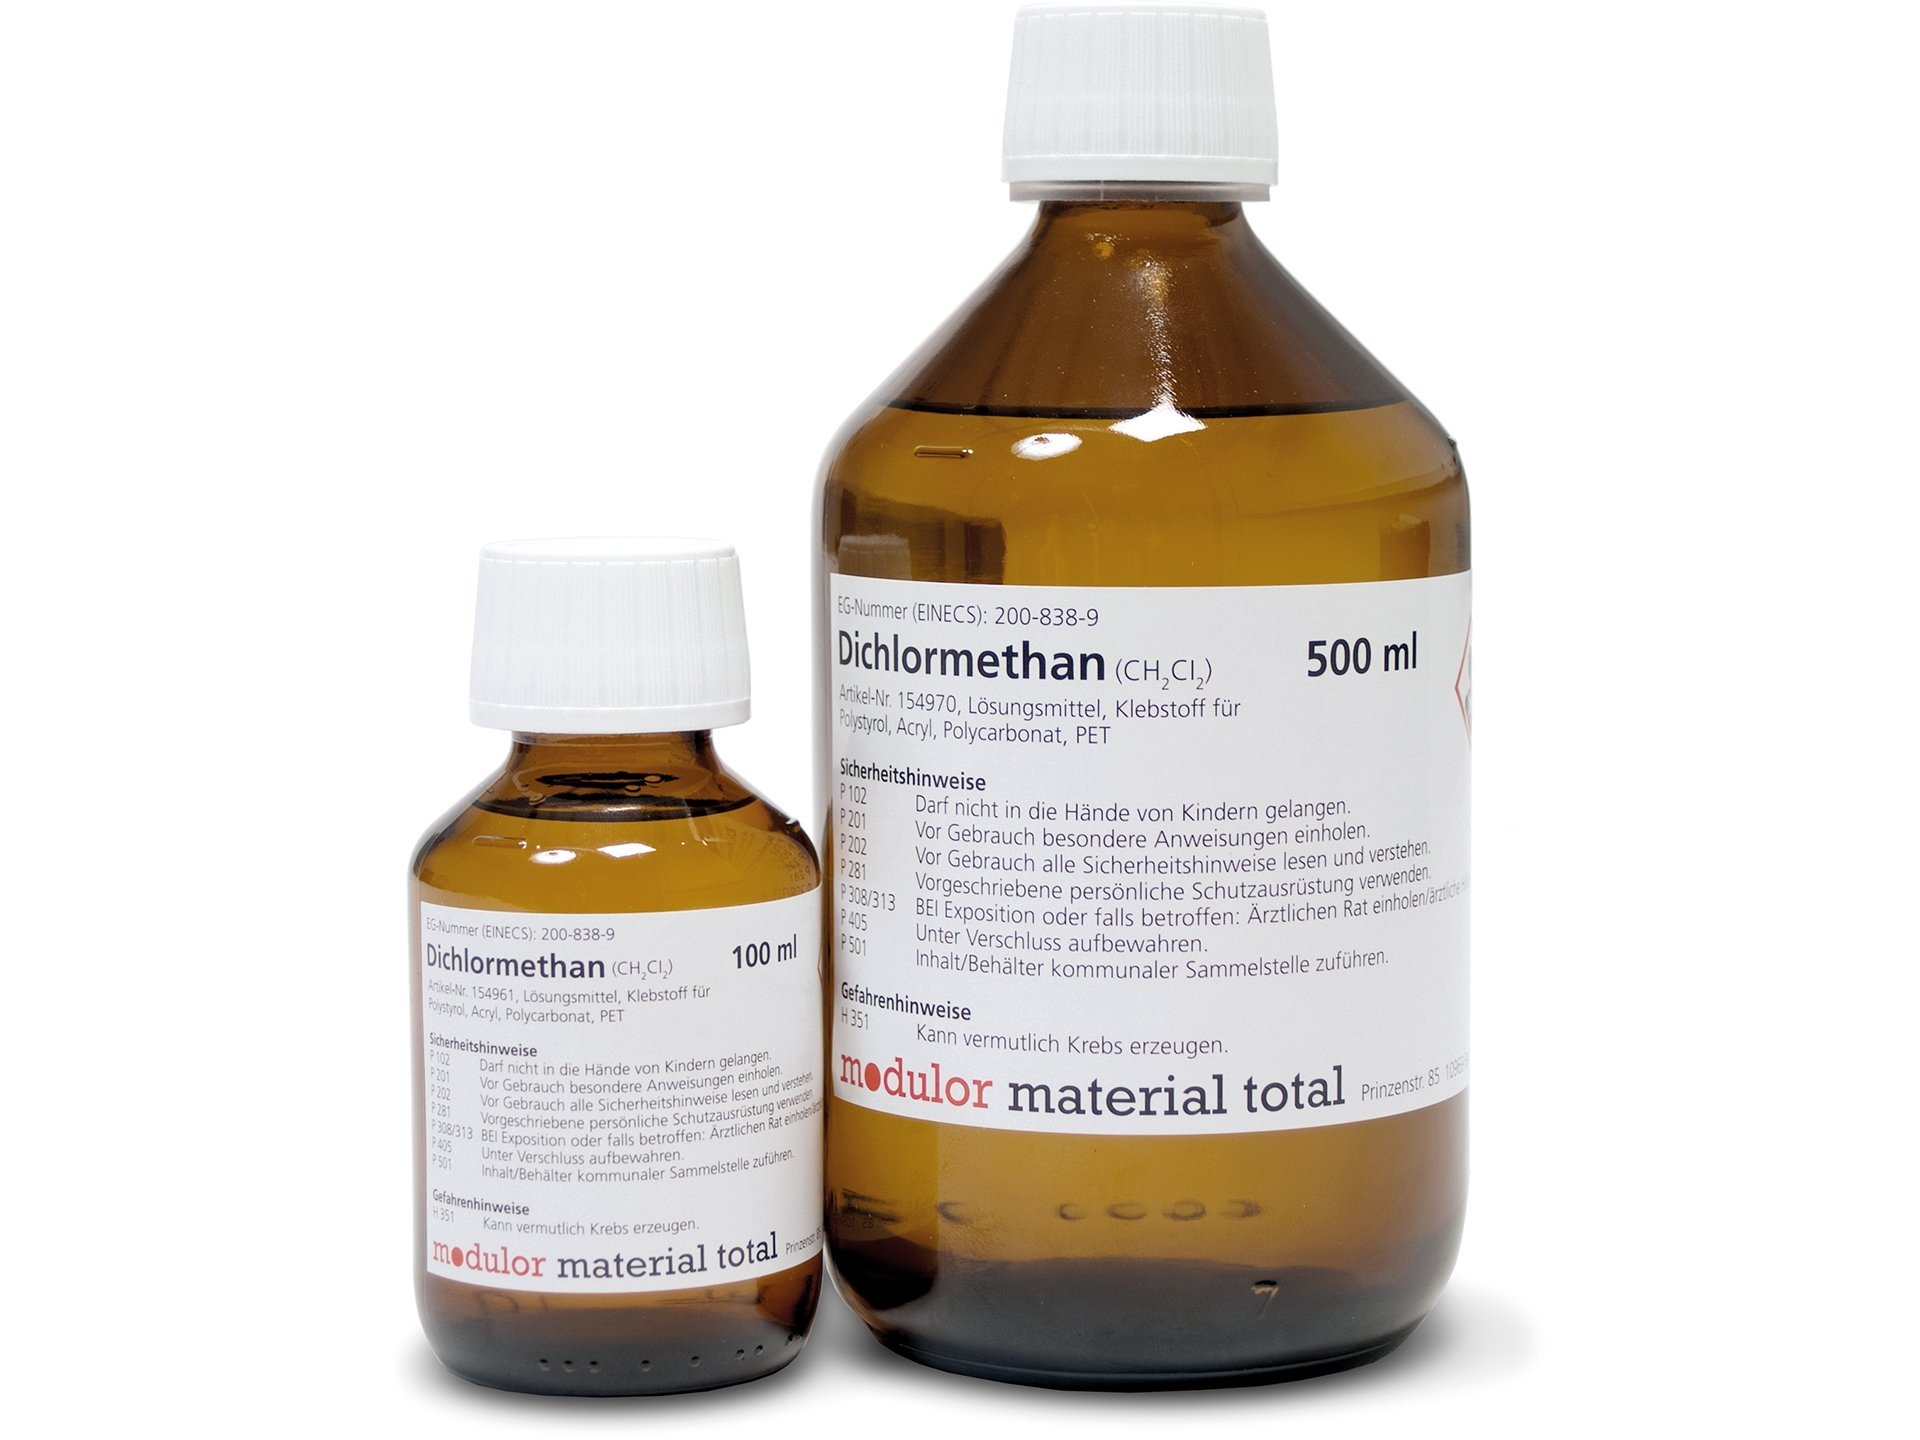 Buy Dichloromethane Methylene Chloride Online At Modulor